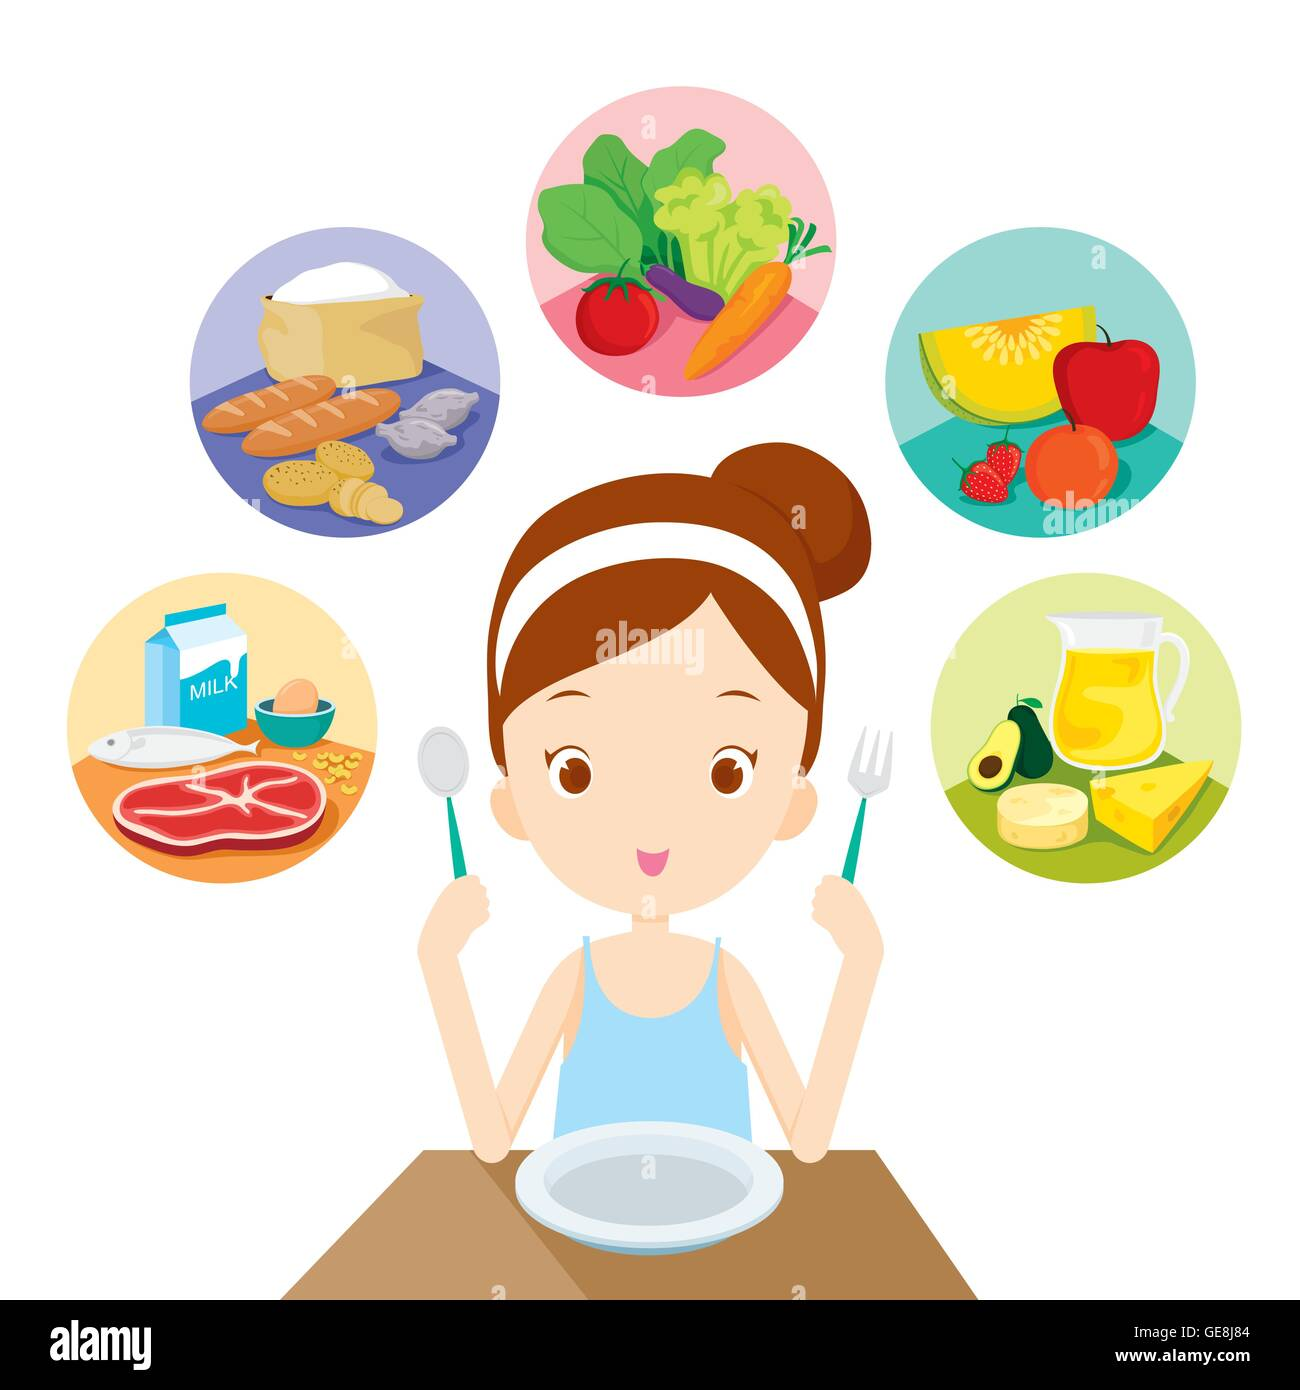 Healthy Foods And Excercise